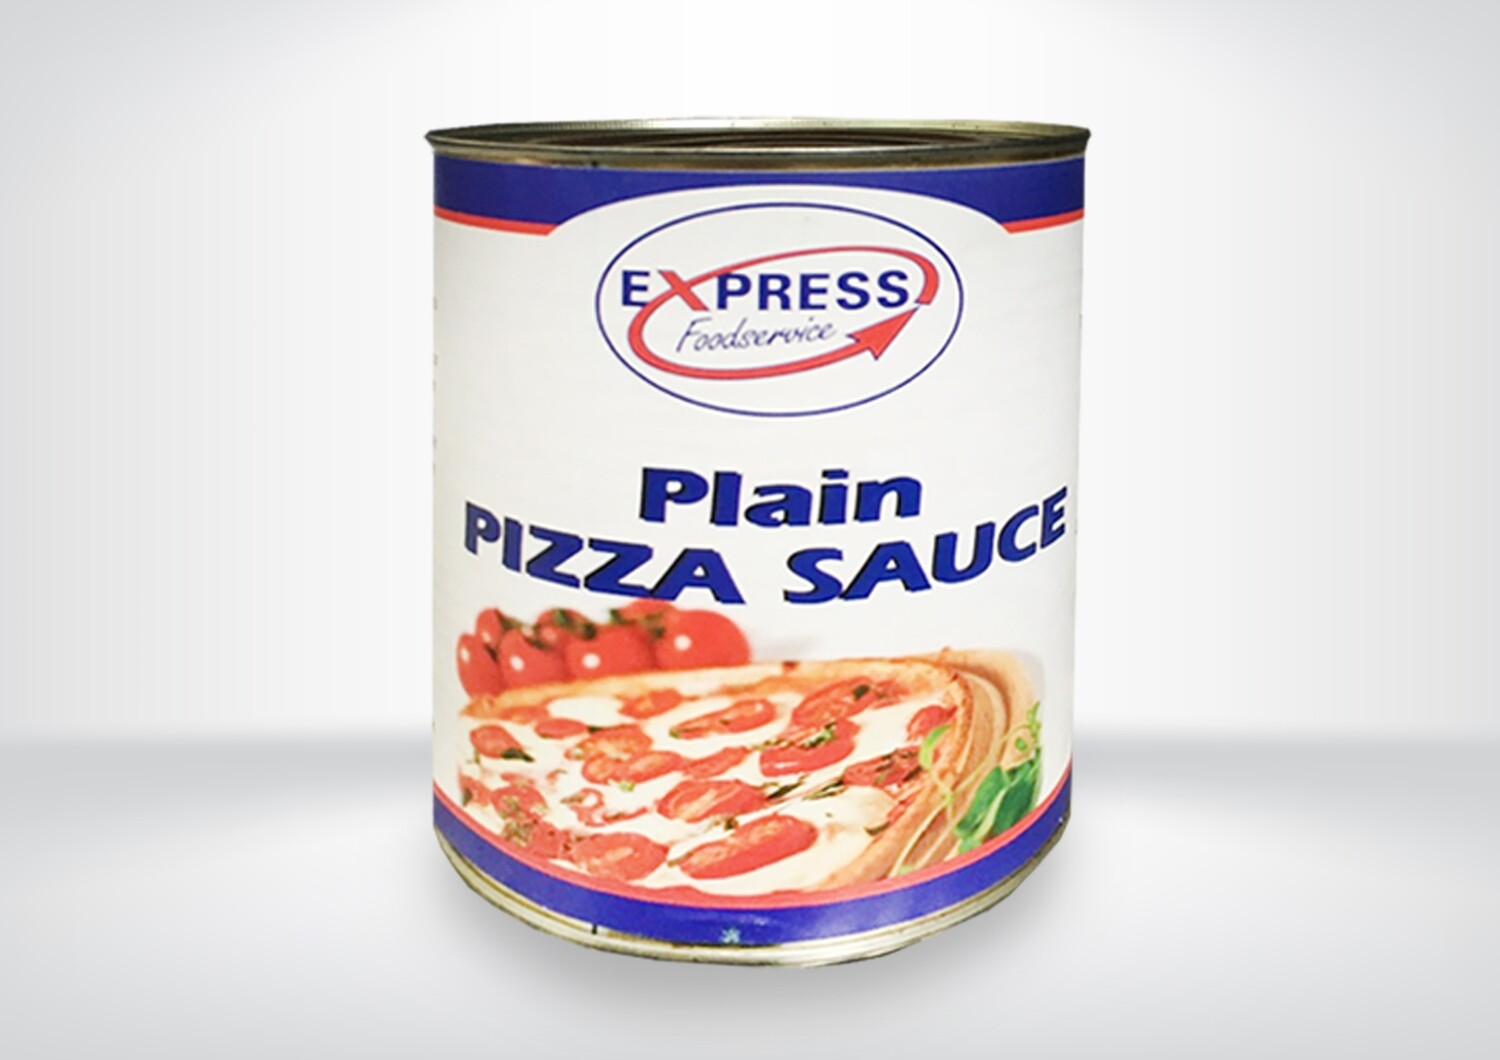 Express Plain Pizza Sauce